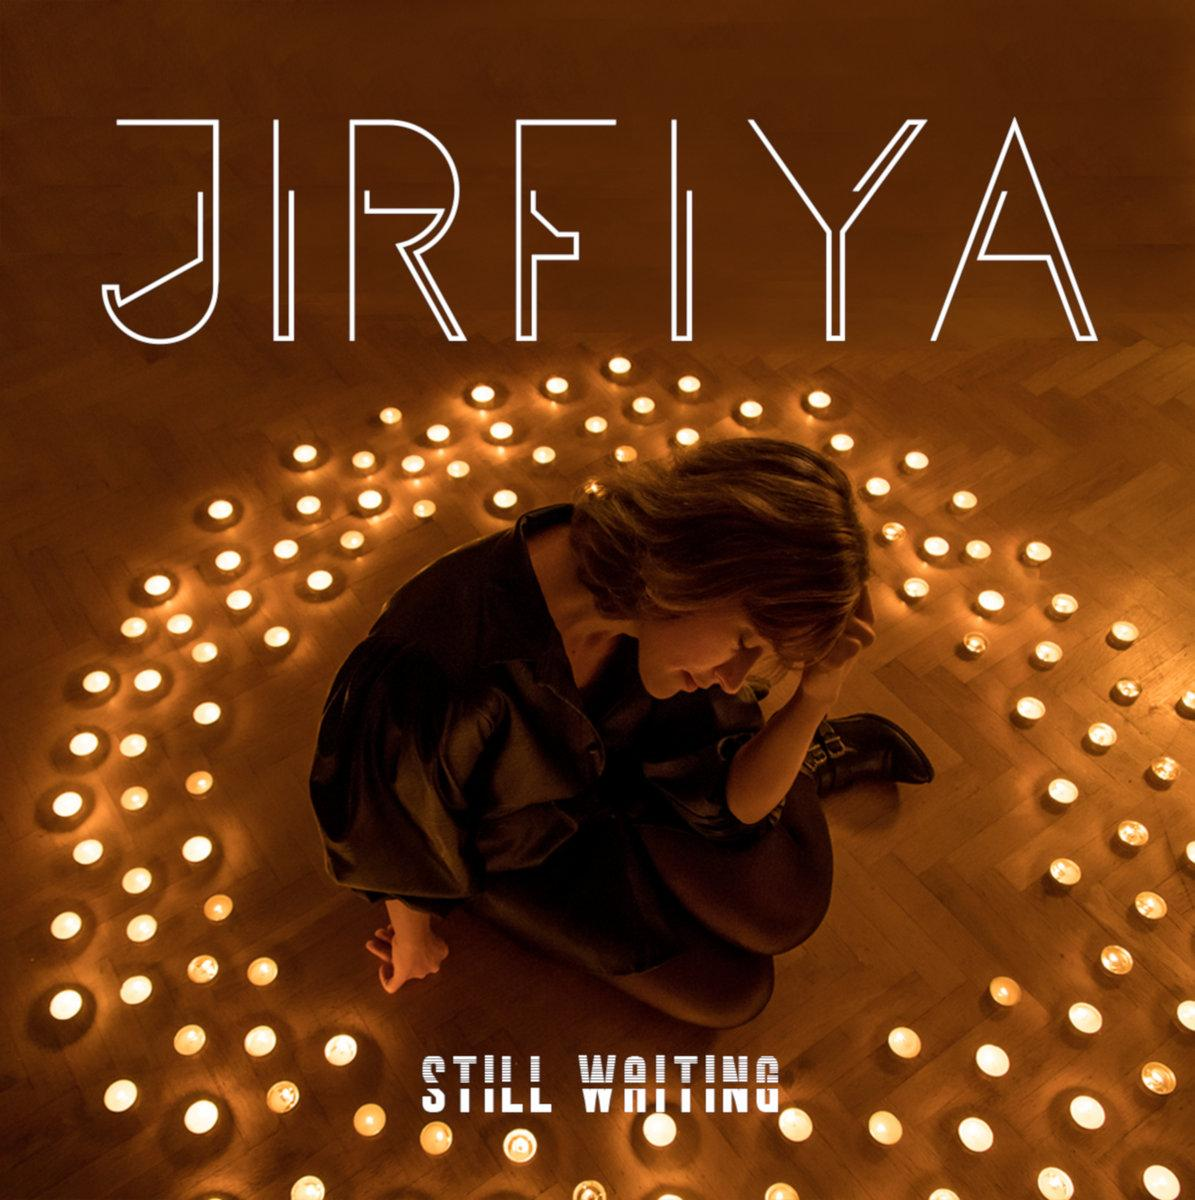 Chronique d'album : JIRFIYA (Metal),